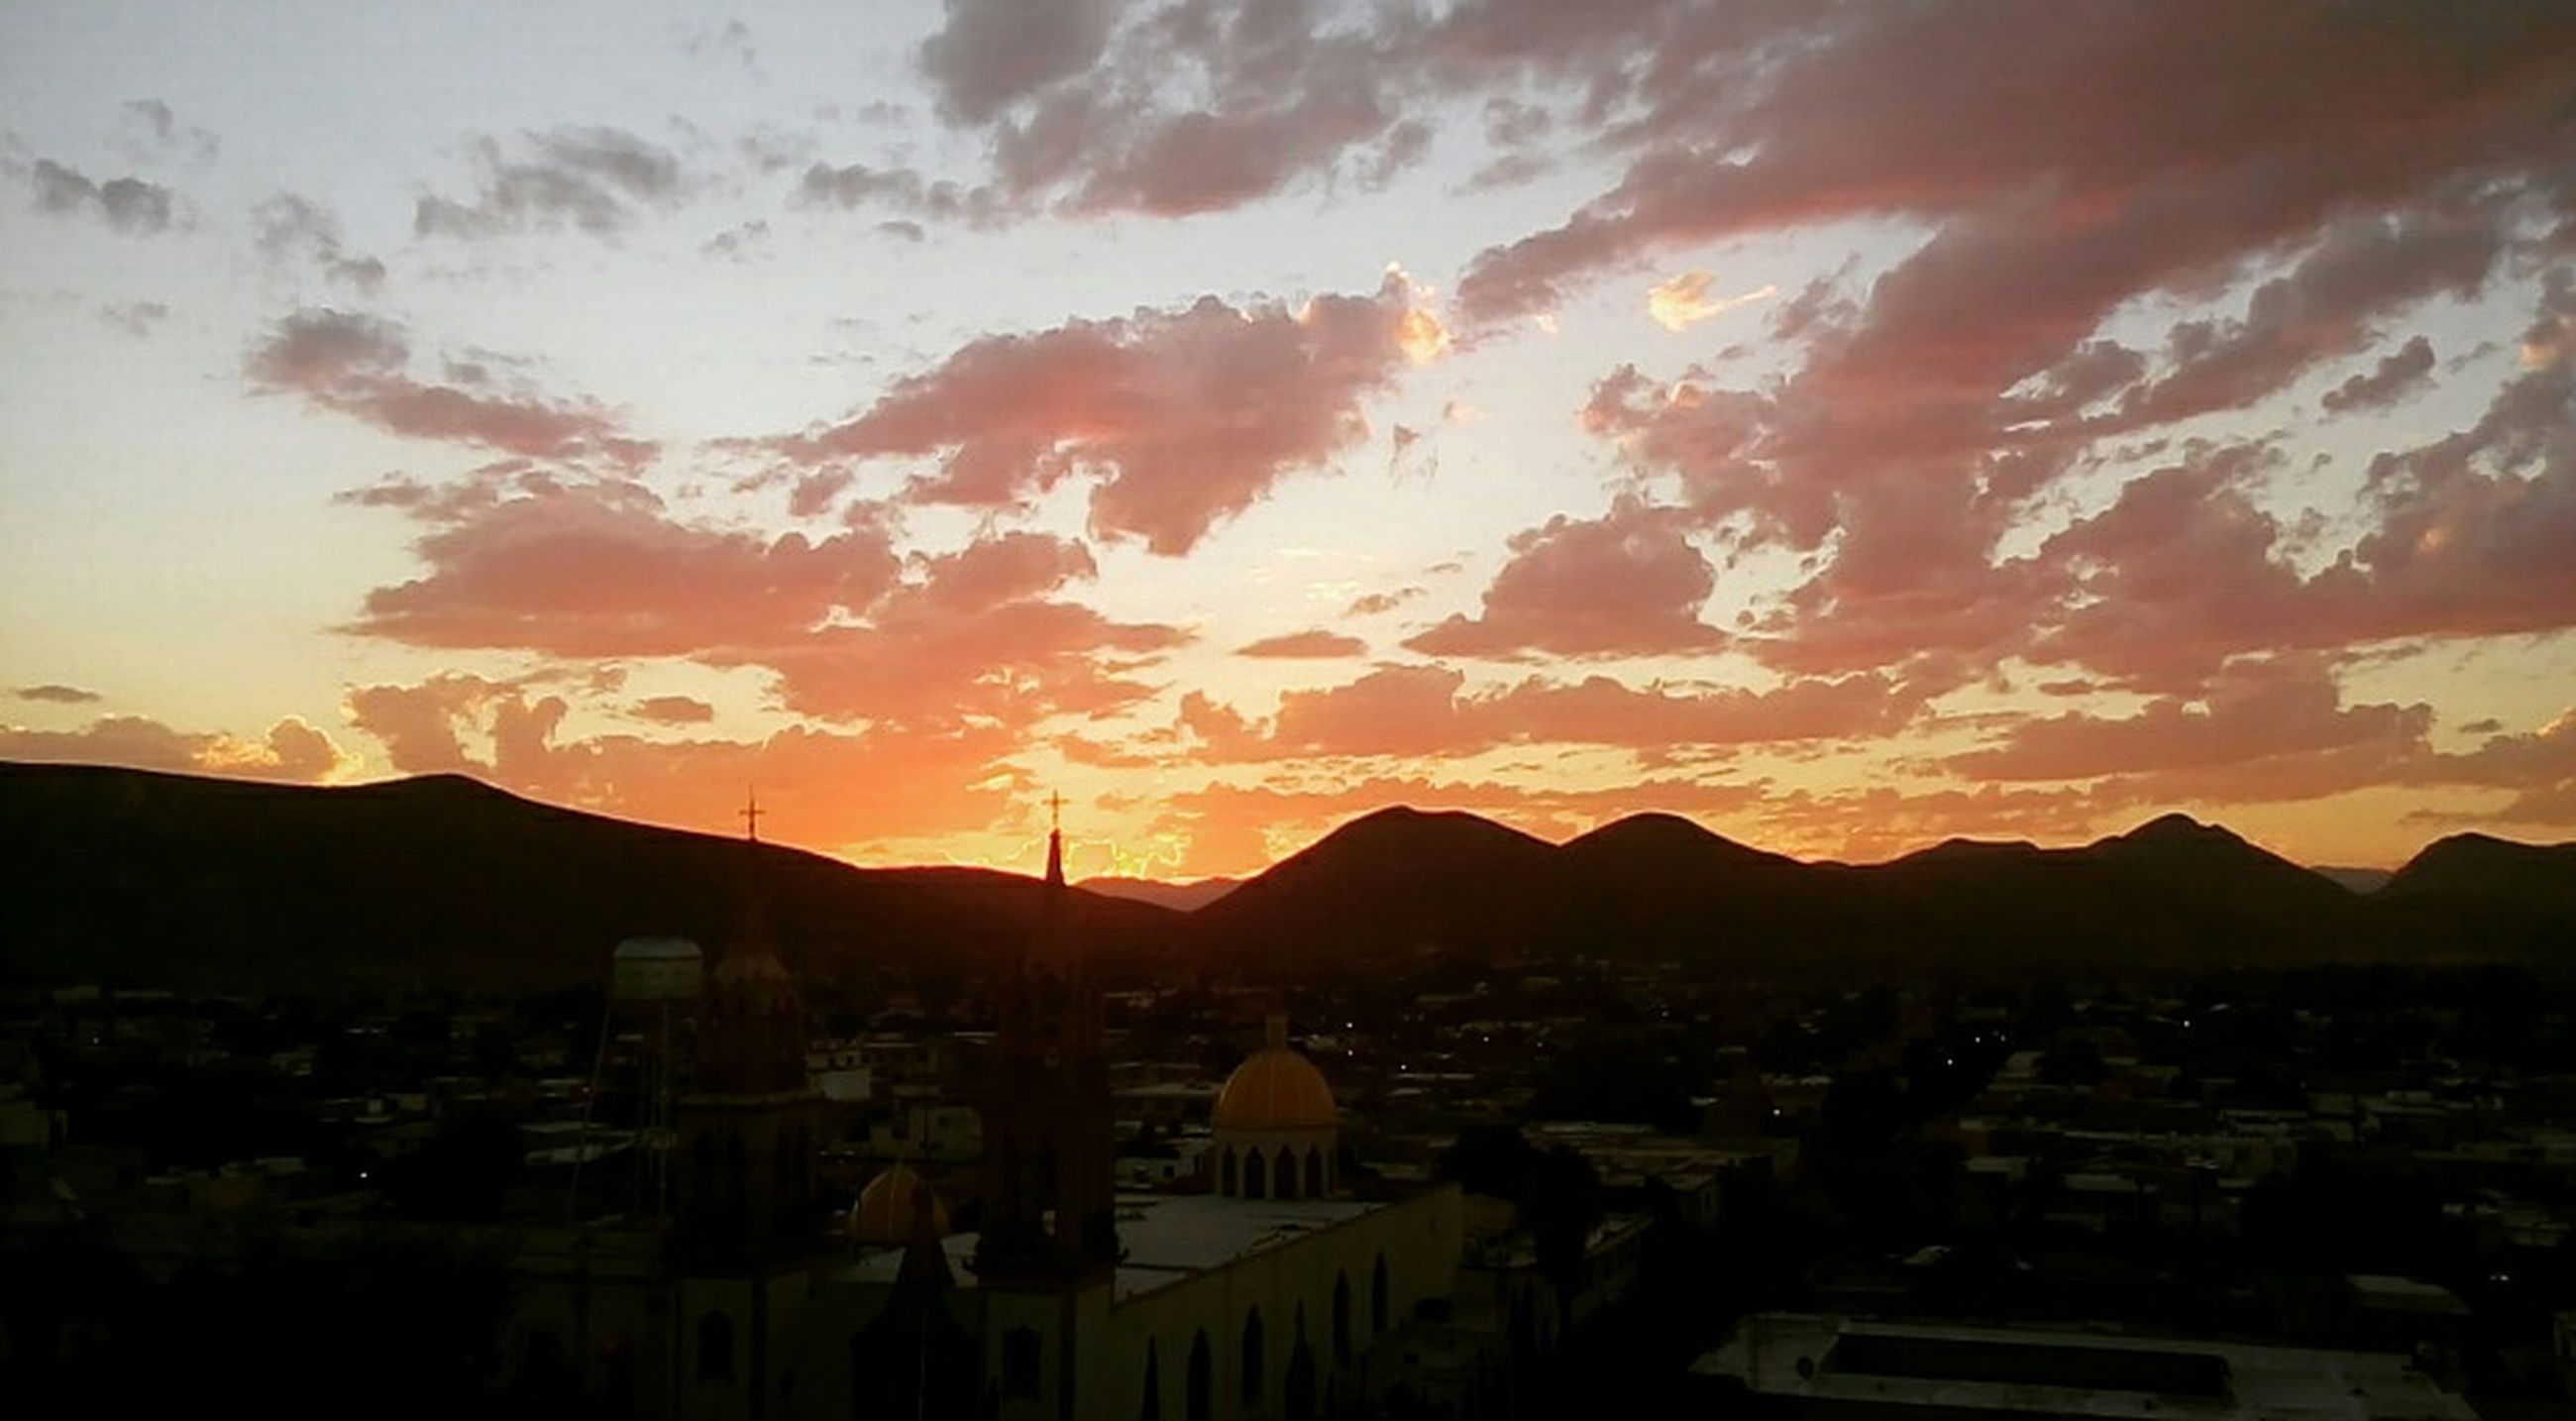 sunset, mountain, building exterior, architecture, built structure, sky, mountain range, cityscape, orange color, city, residential structure, cloud - sky, town, residential district, house, residential building, townscape, silhouette, high angle view, scenics